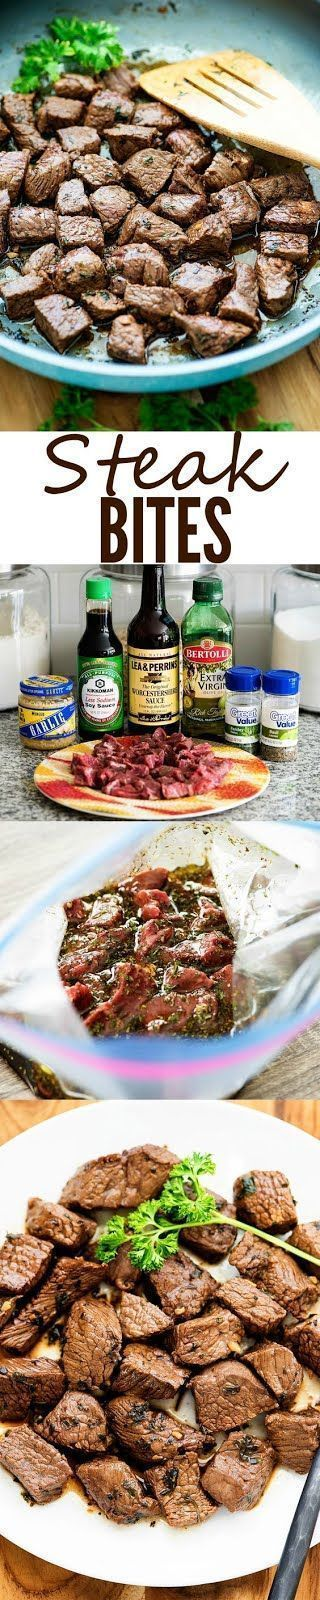 Little bites of steak coated in a flavorful marinade. We love these for a quick dinner!